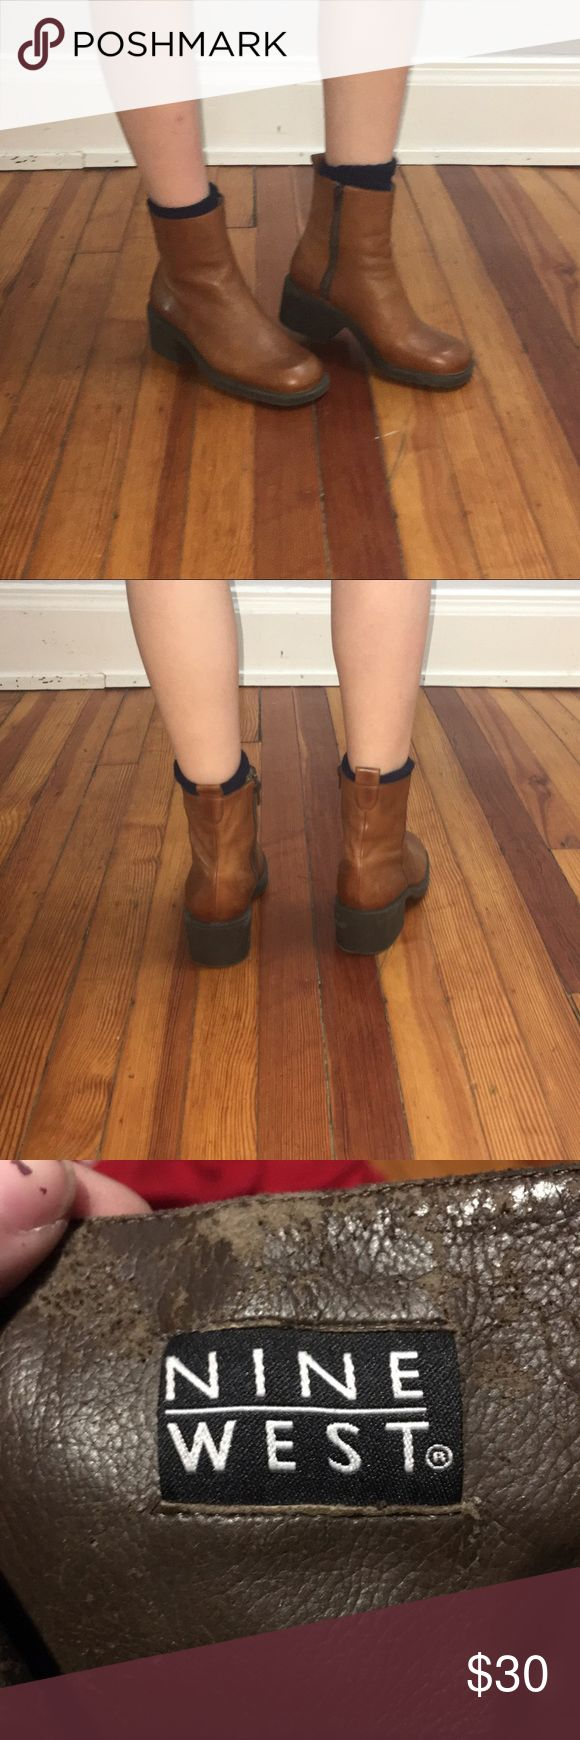 Brown Leather Ankle Boots Soft brown leather ankle boots. Round toe. Never worn.   *** • No swaps • Bundle for a discount! Nine West Shoes Ankle Boots & Booties